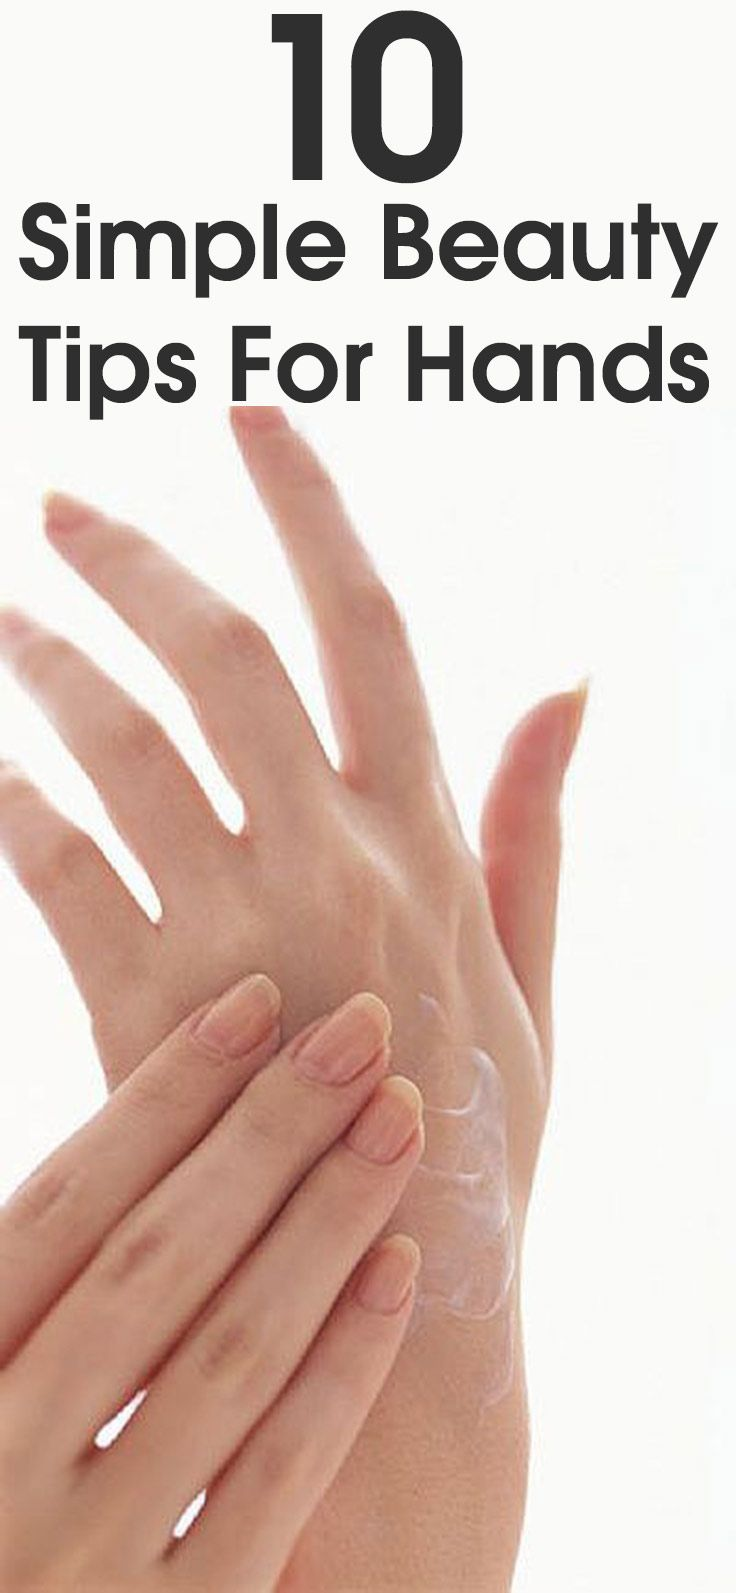 11 Simple Beauty Tips For Hands At Home  Natural cure for